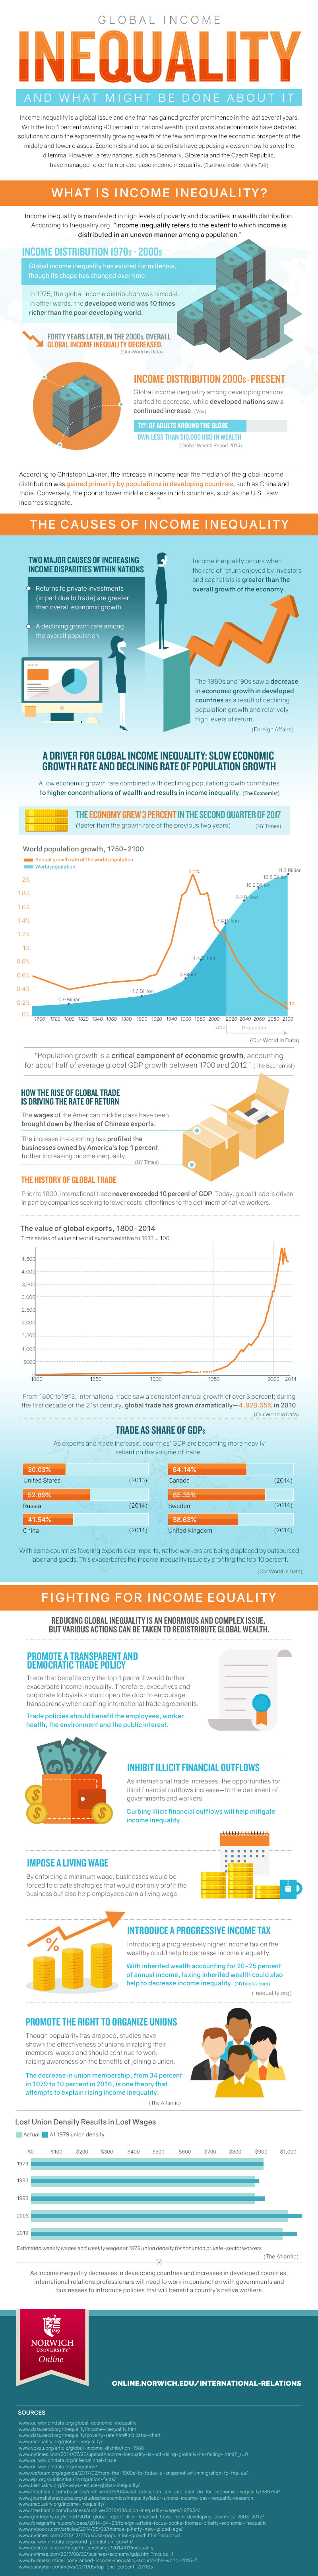 infographic on global income inequality